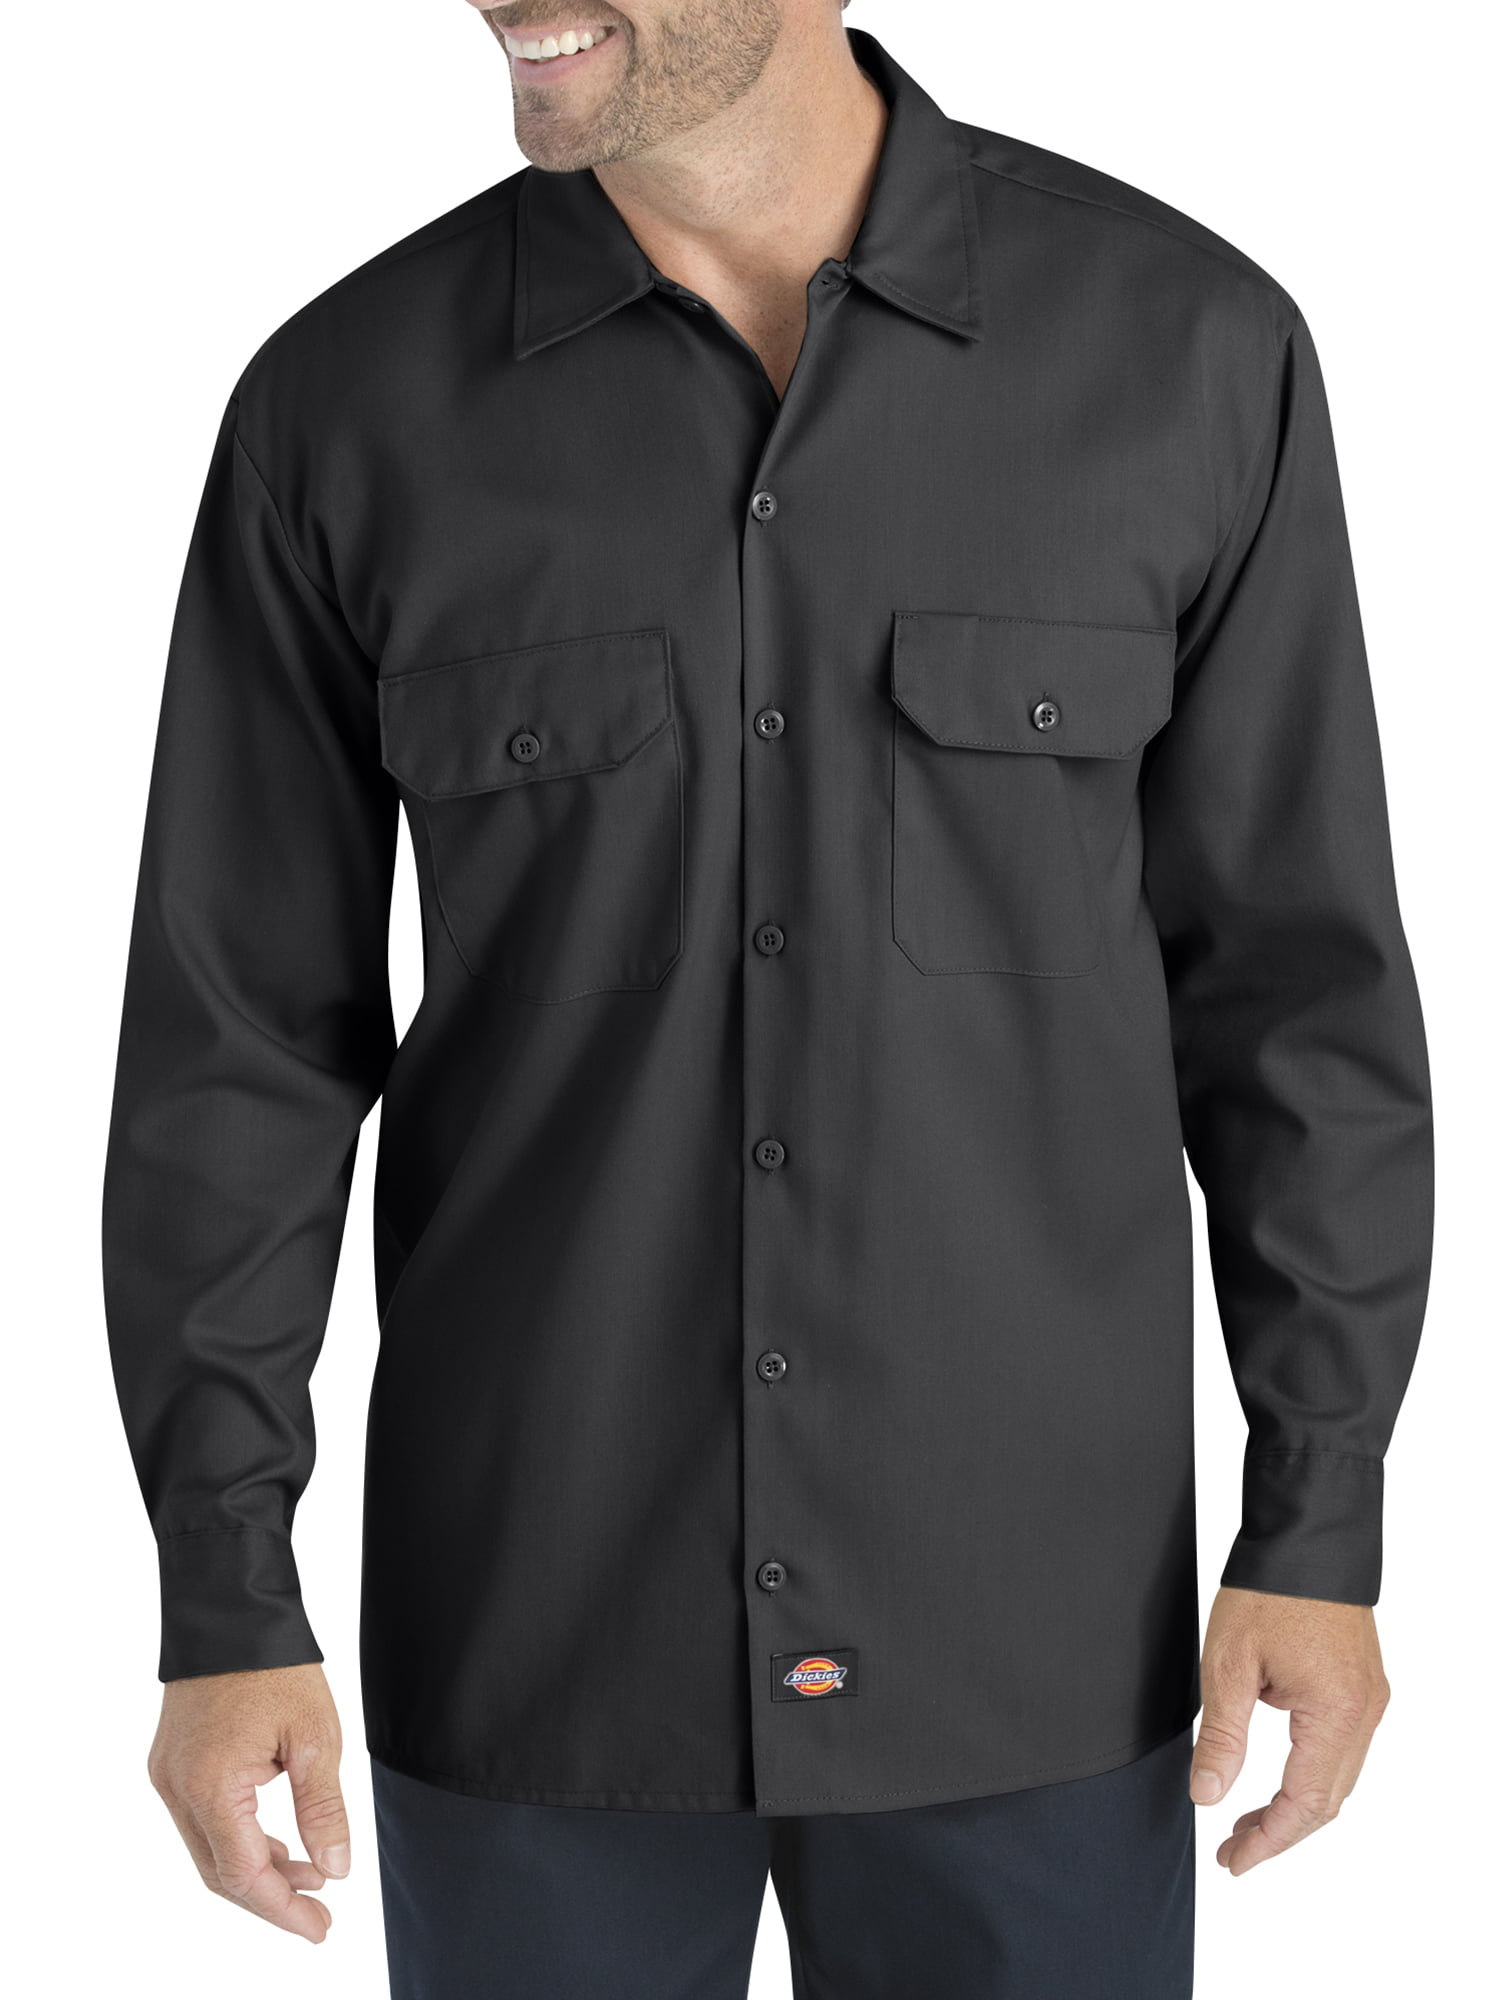 Dickies 574 Long Sleeve Button Down Top Utility /& Safety Uniform Work Shirt